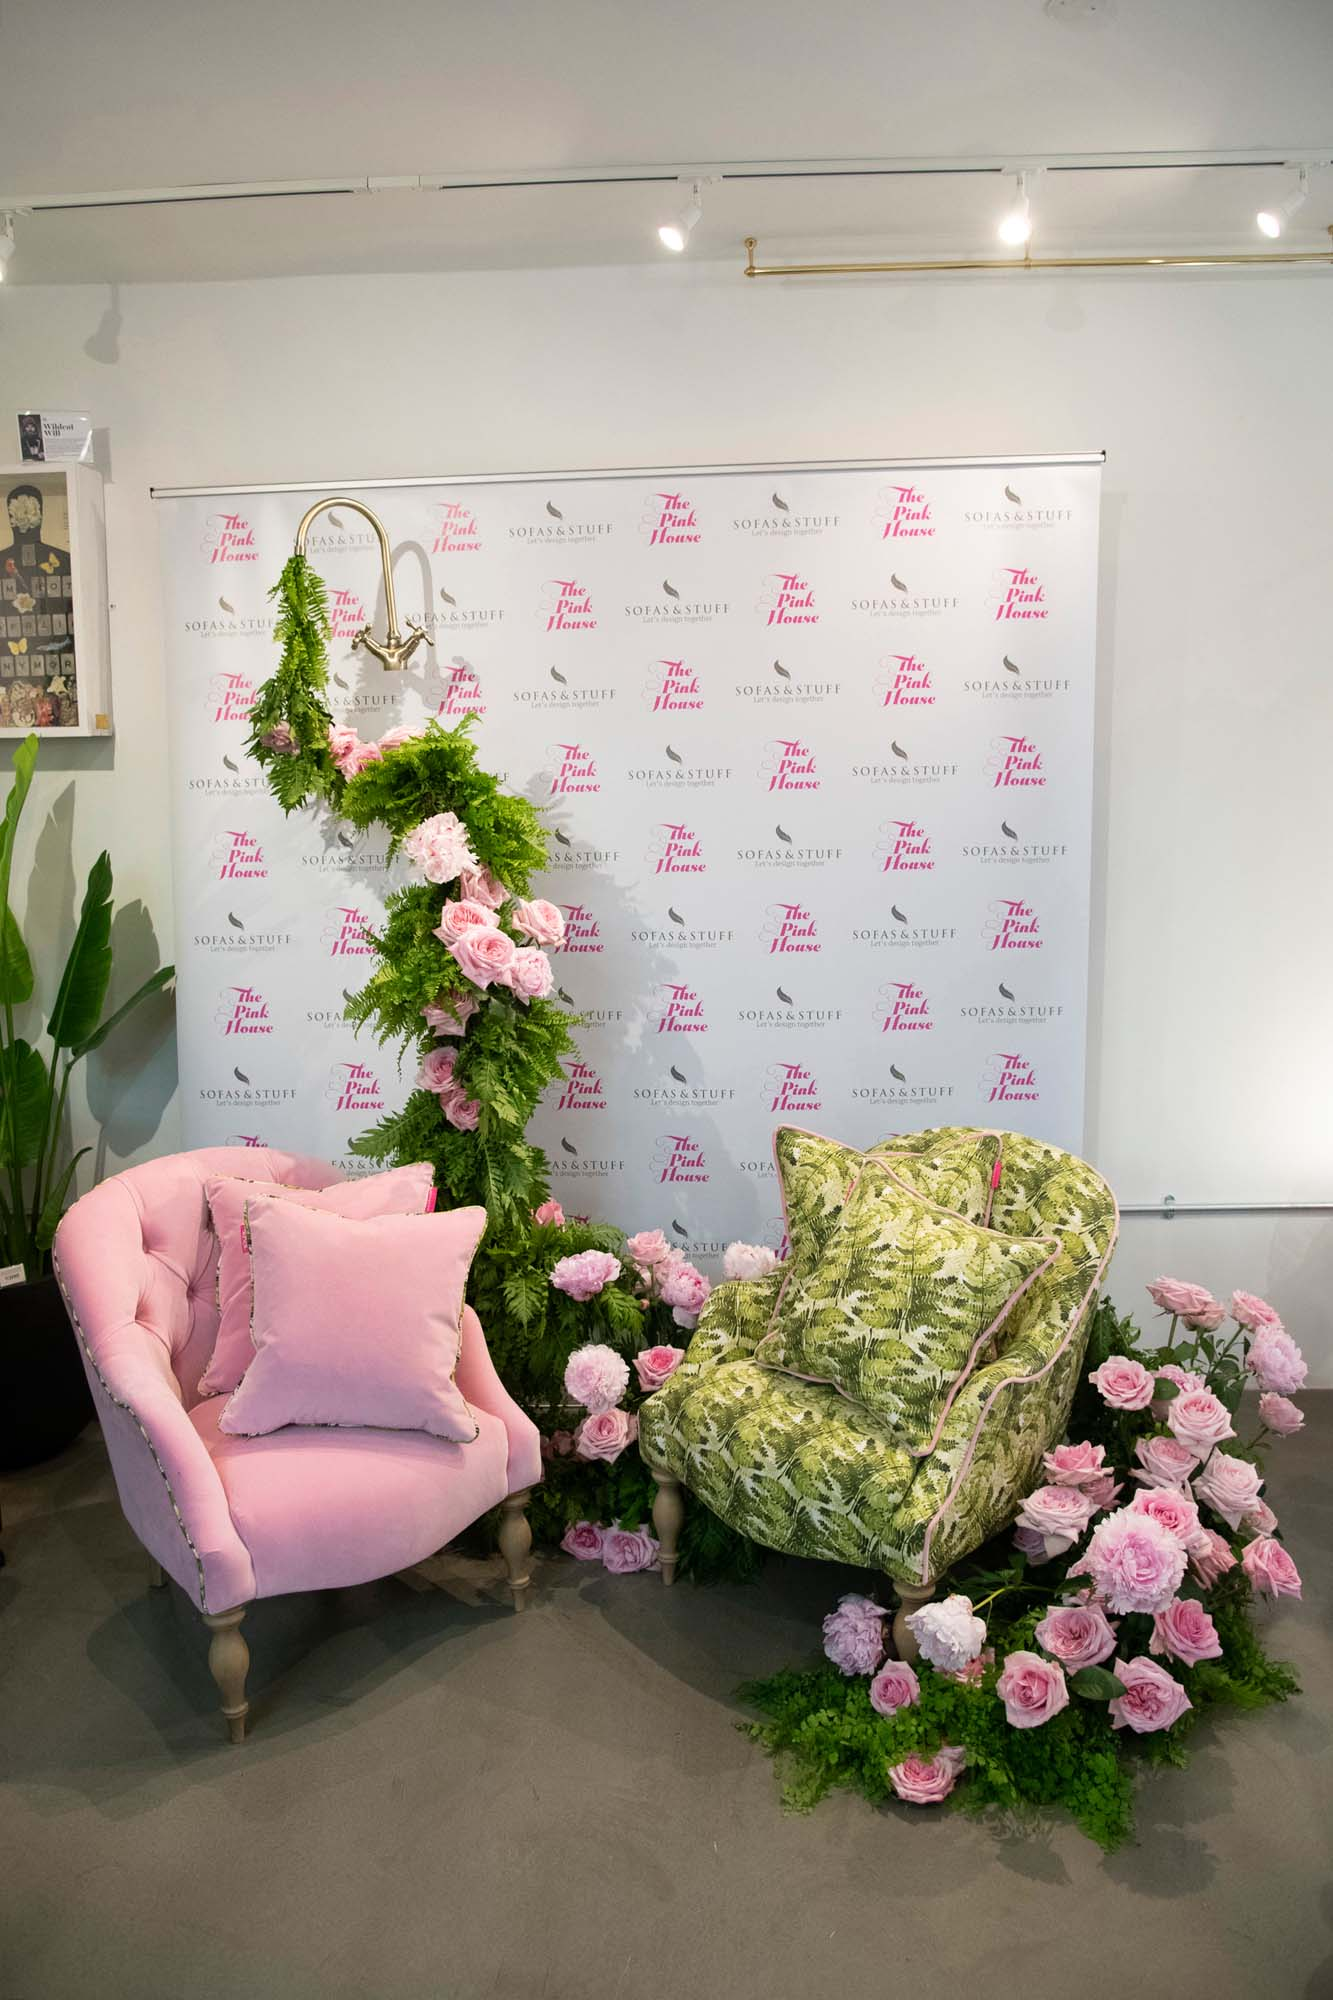 Hayford & Rhodes pink peonies and ferns installation for The Pink House